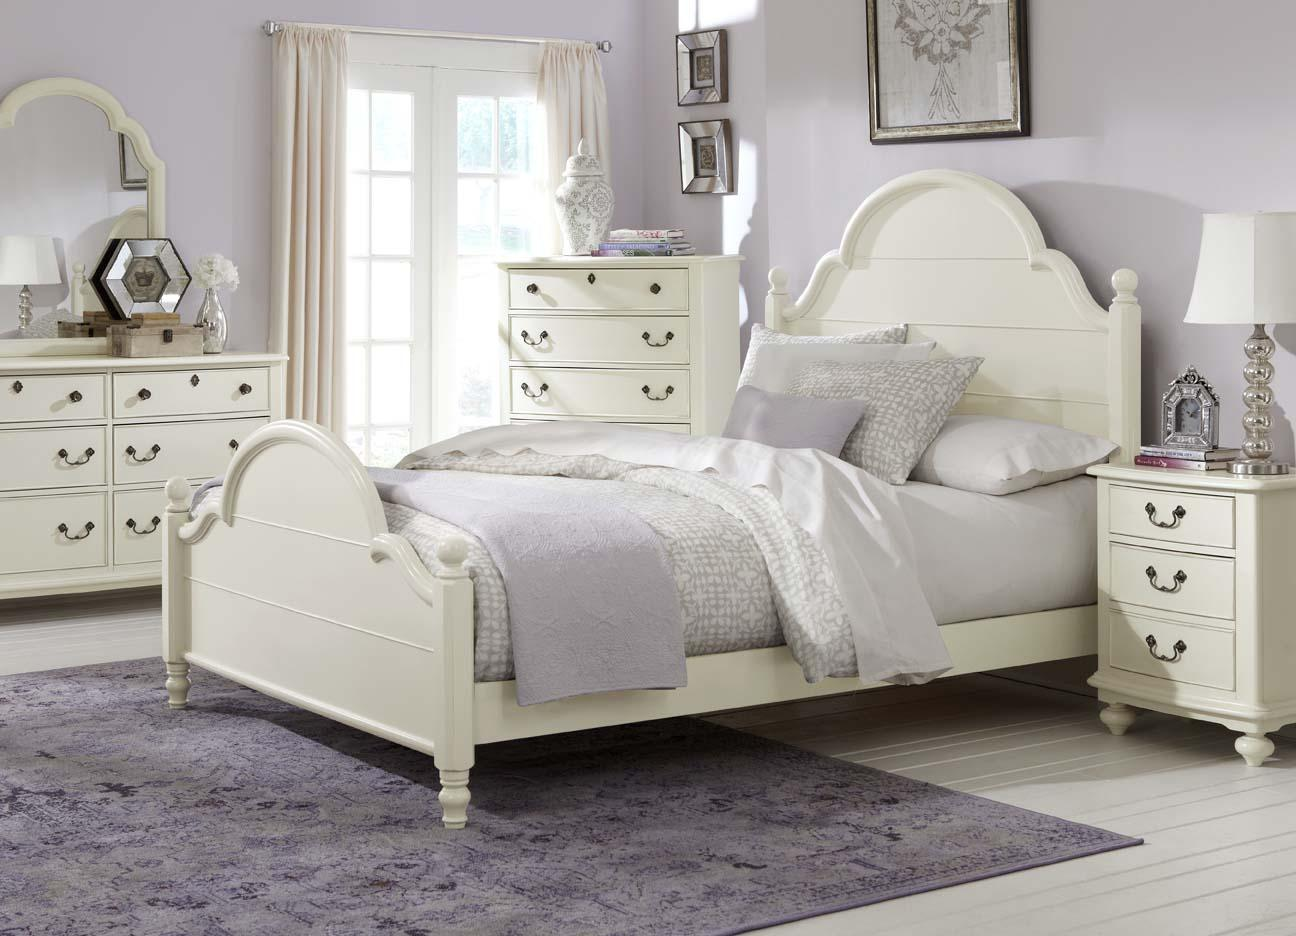 Legacy Classic Kids Inspirations by Wendy Bellissimo Full Bedroom Group 1 - Item Number: 3832 Full Bedroom Group 1